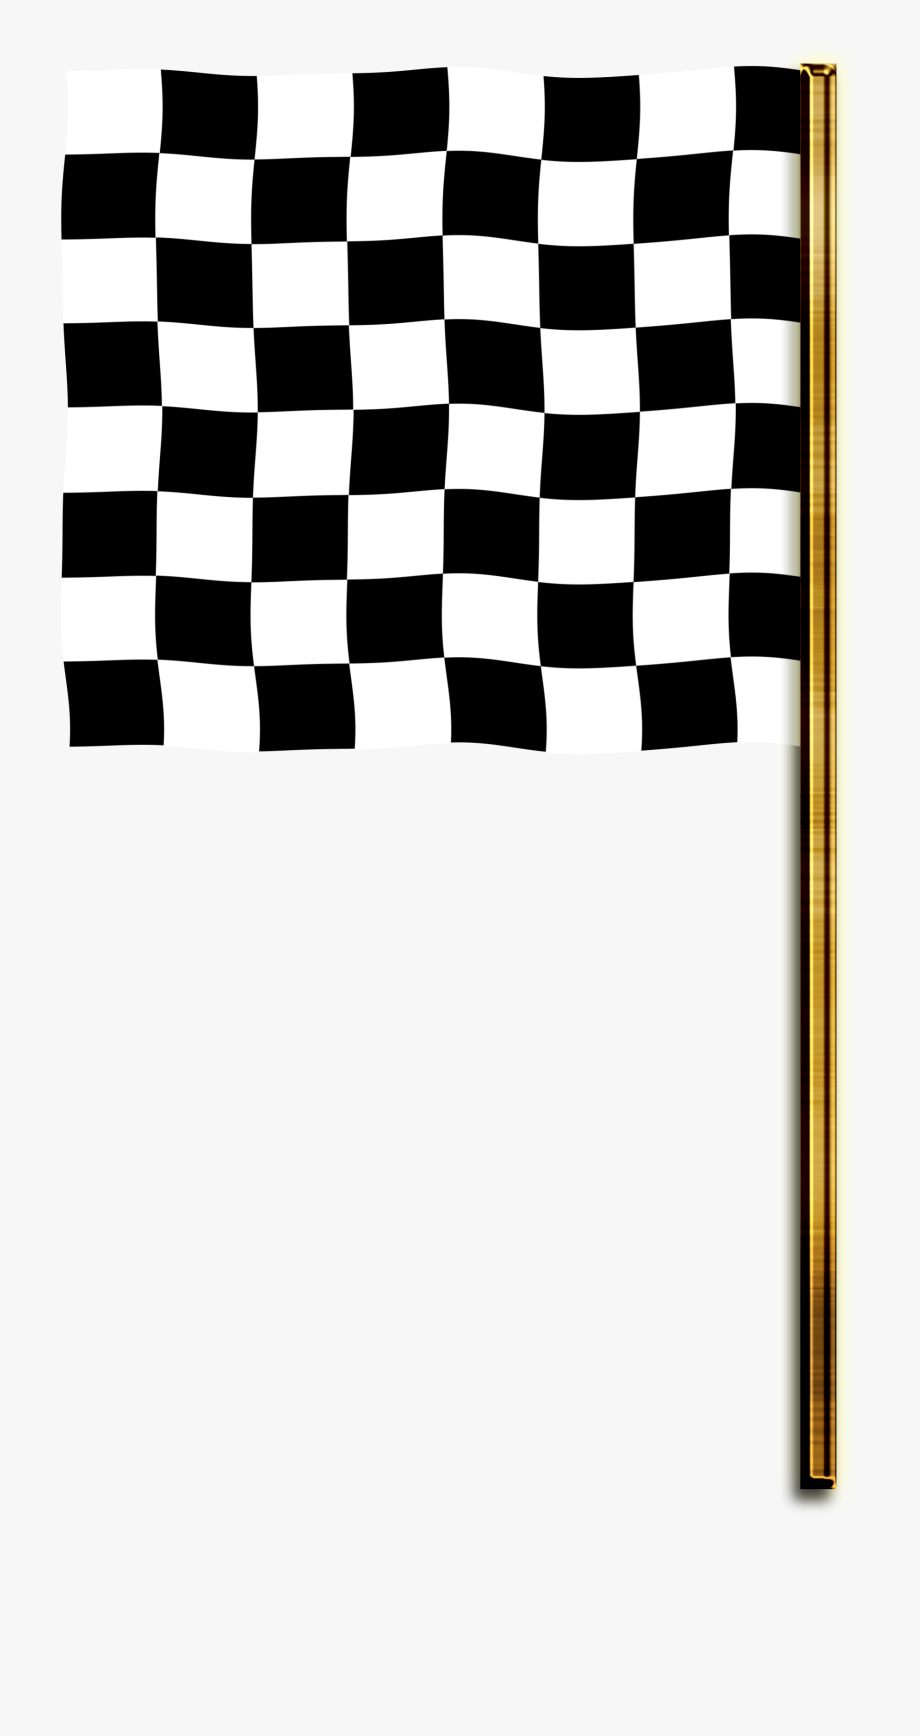 Finish line clipart black and white clip free Finish Line Clipart Transparent Background - Chess Board Ppt ... clip free